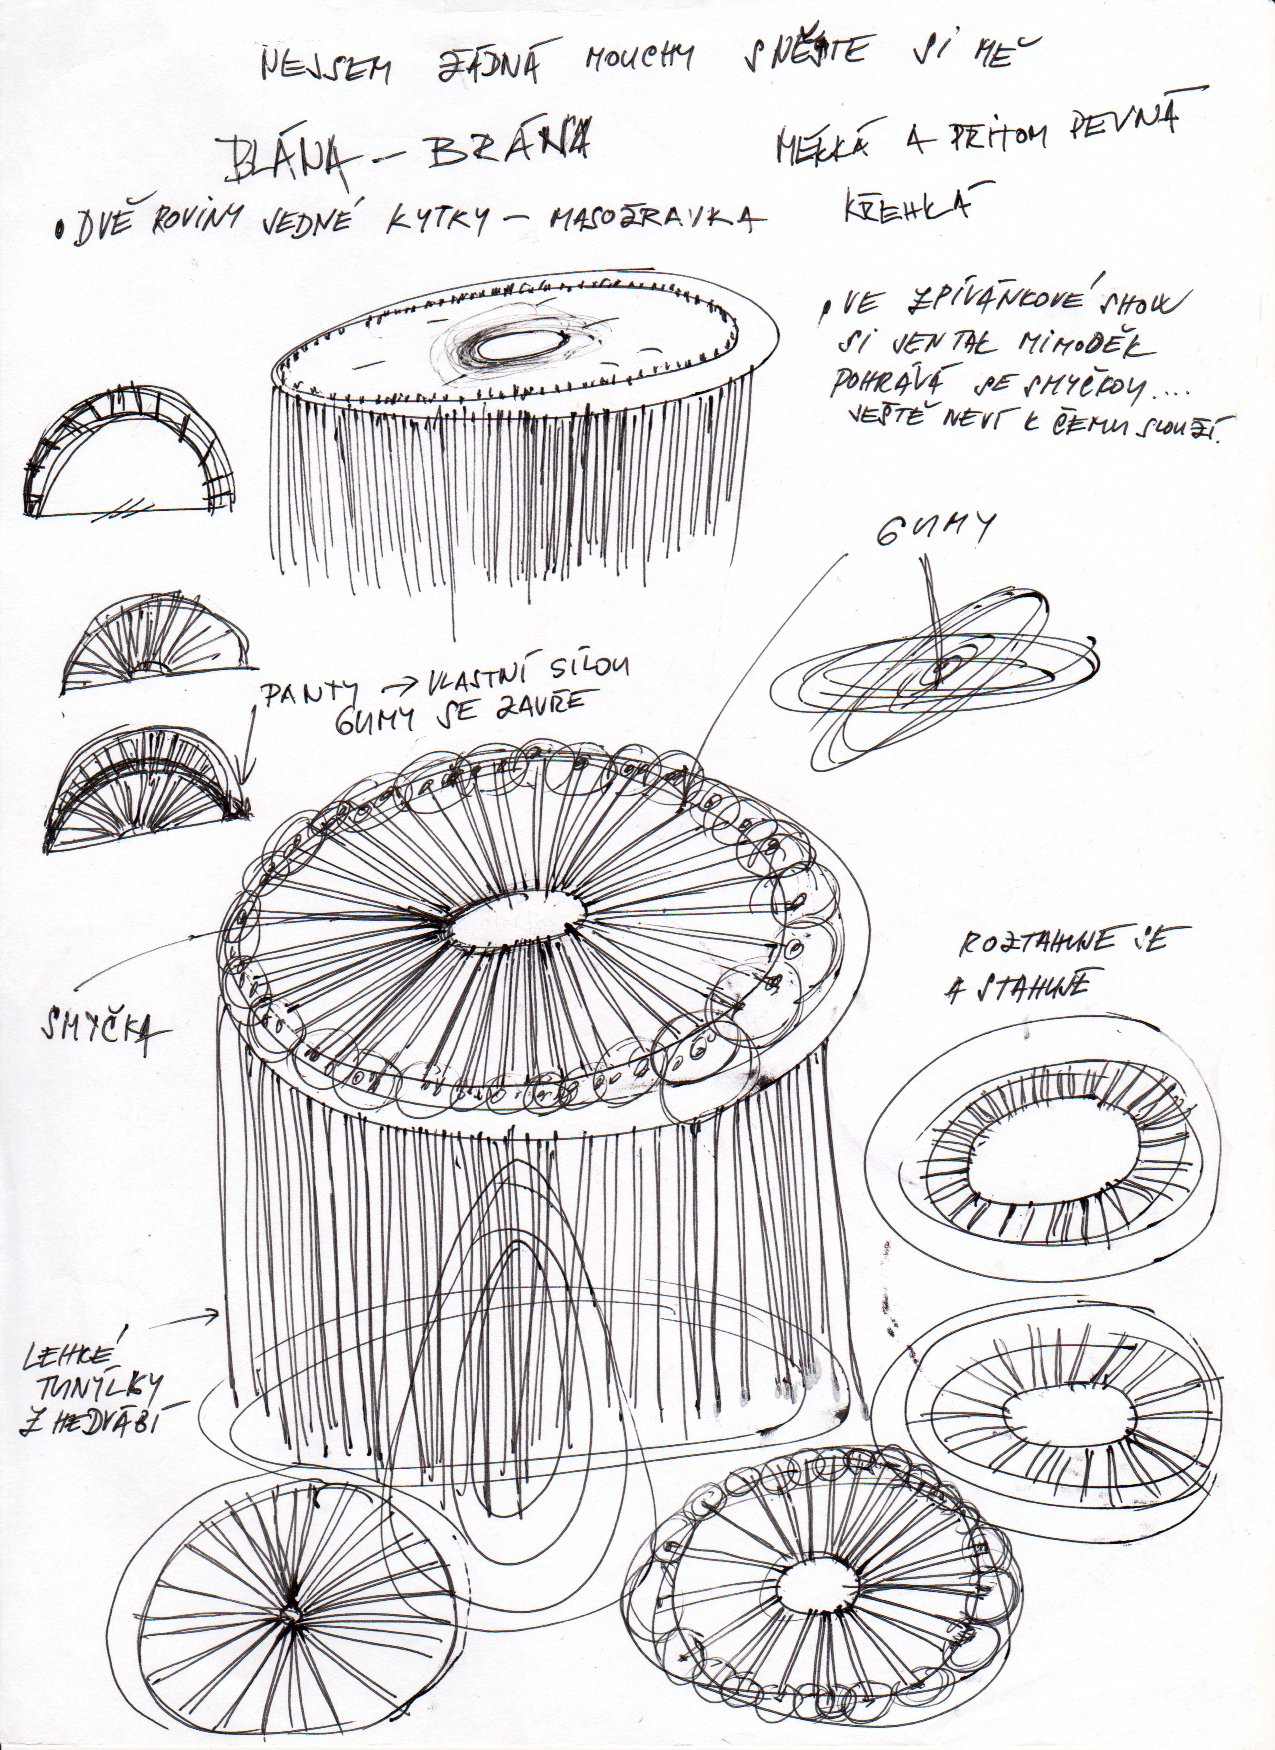 Skica objektu/Sketch of Object